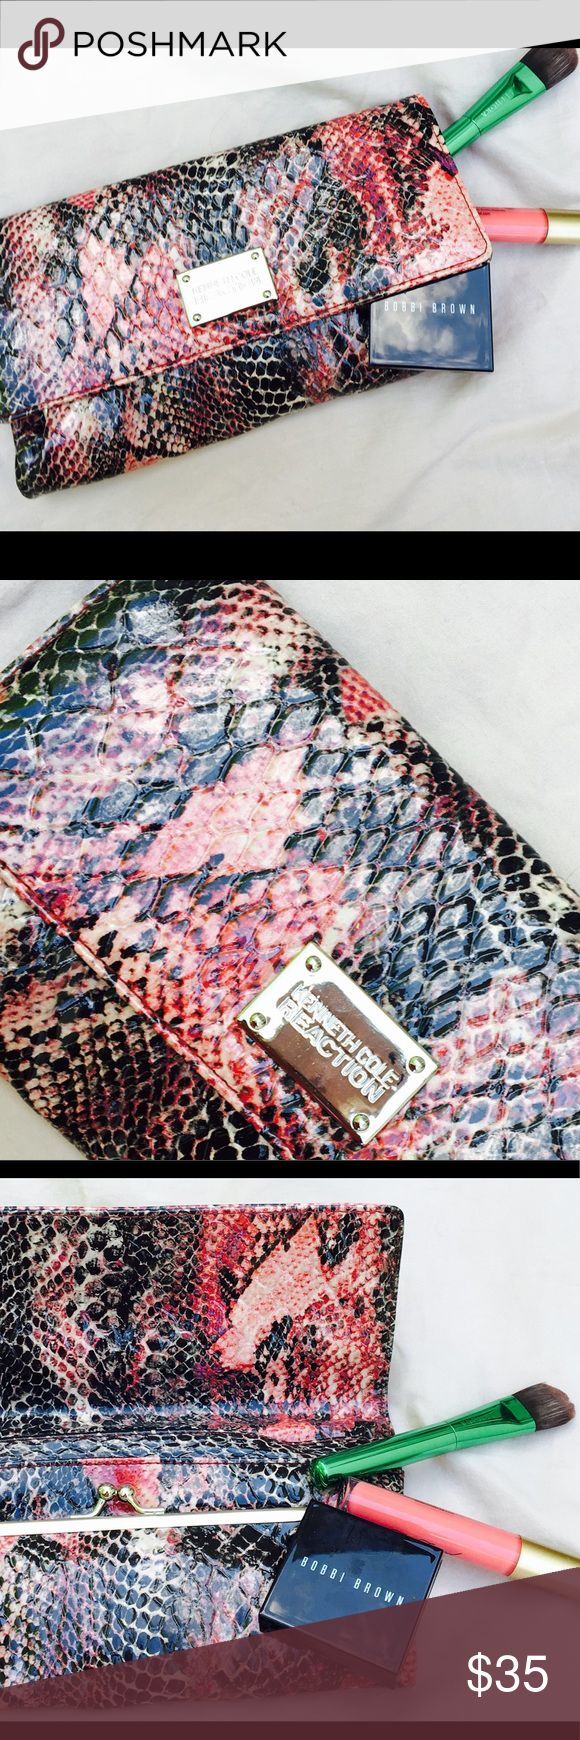 NWOT Kenneth Cole Reaction Faux Snake Skin Wallet. NWOT Kenneth Cole Reaction Faux Snake Skin Wallet.   Primary flap close with magnet, Shiny chrome-like metal logo badge, Kiss lock coin purse, 2 compartments with 4 credit card sized slip pockets. Perfect inside your purse yet big enough to use as a clutch on the go! Nordstrom Bags Wallets